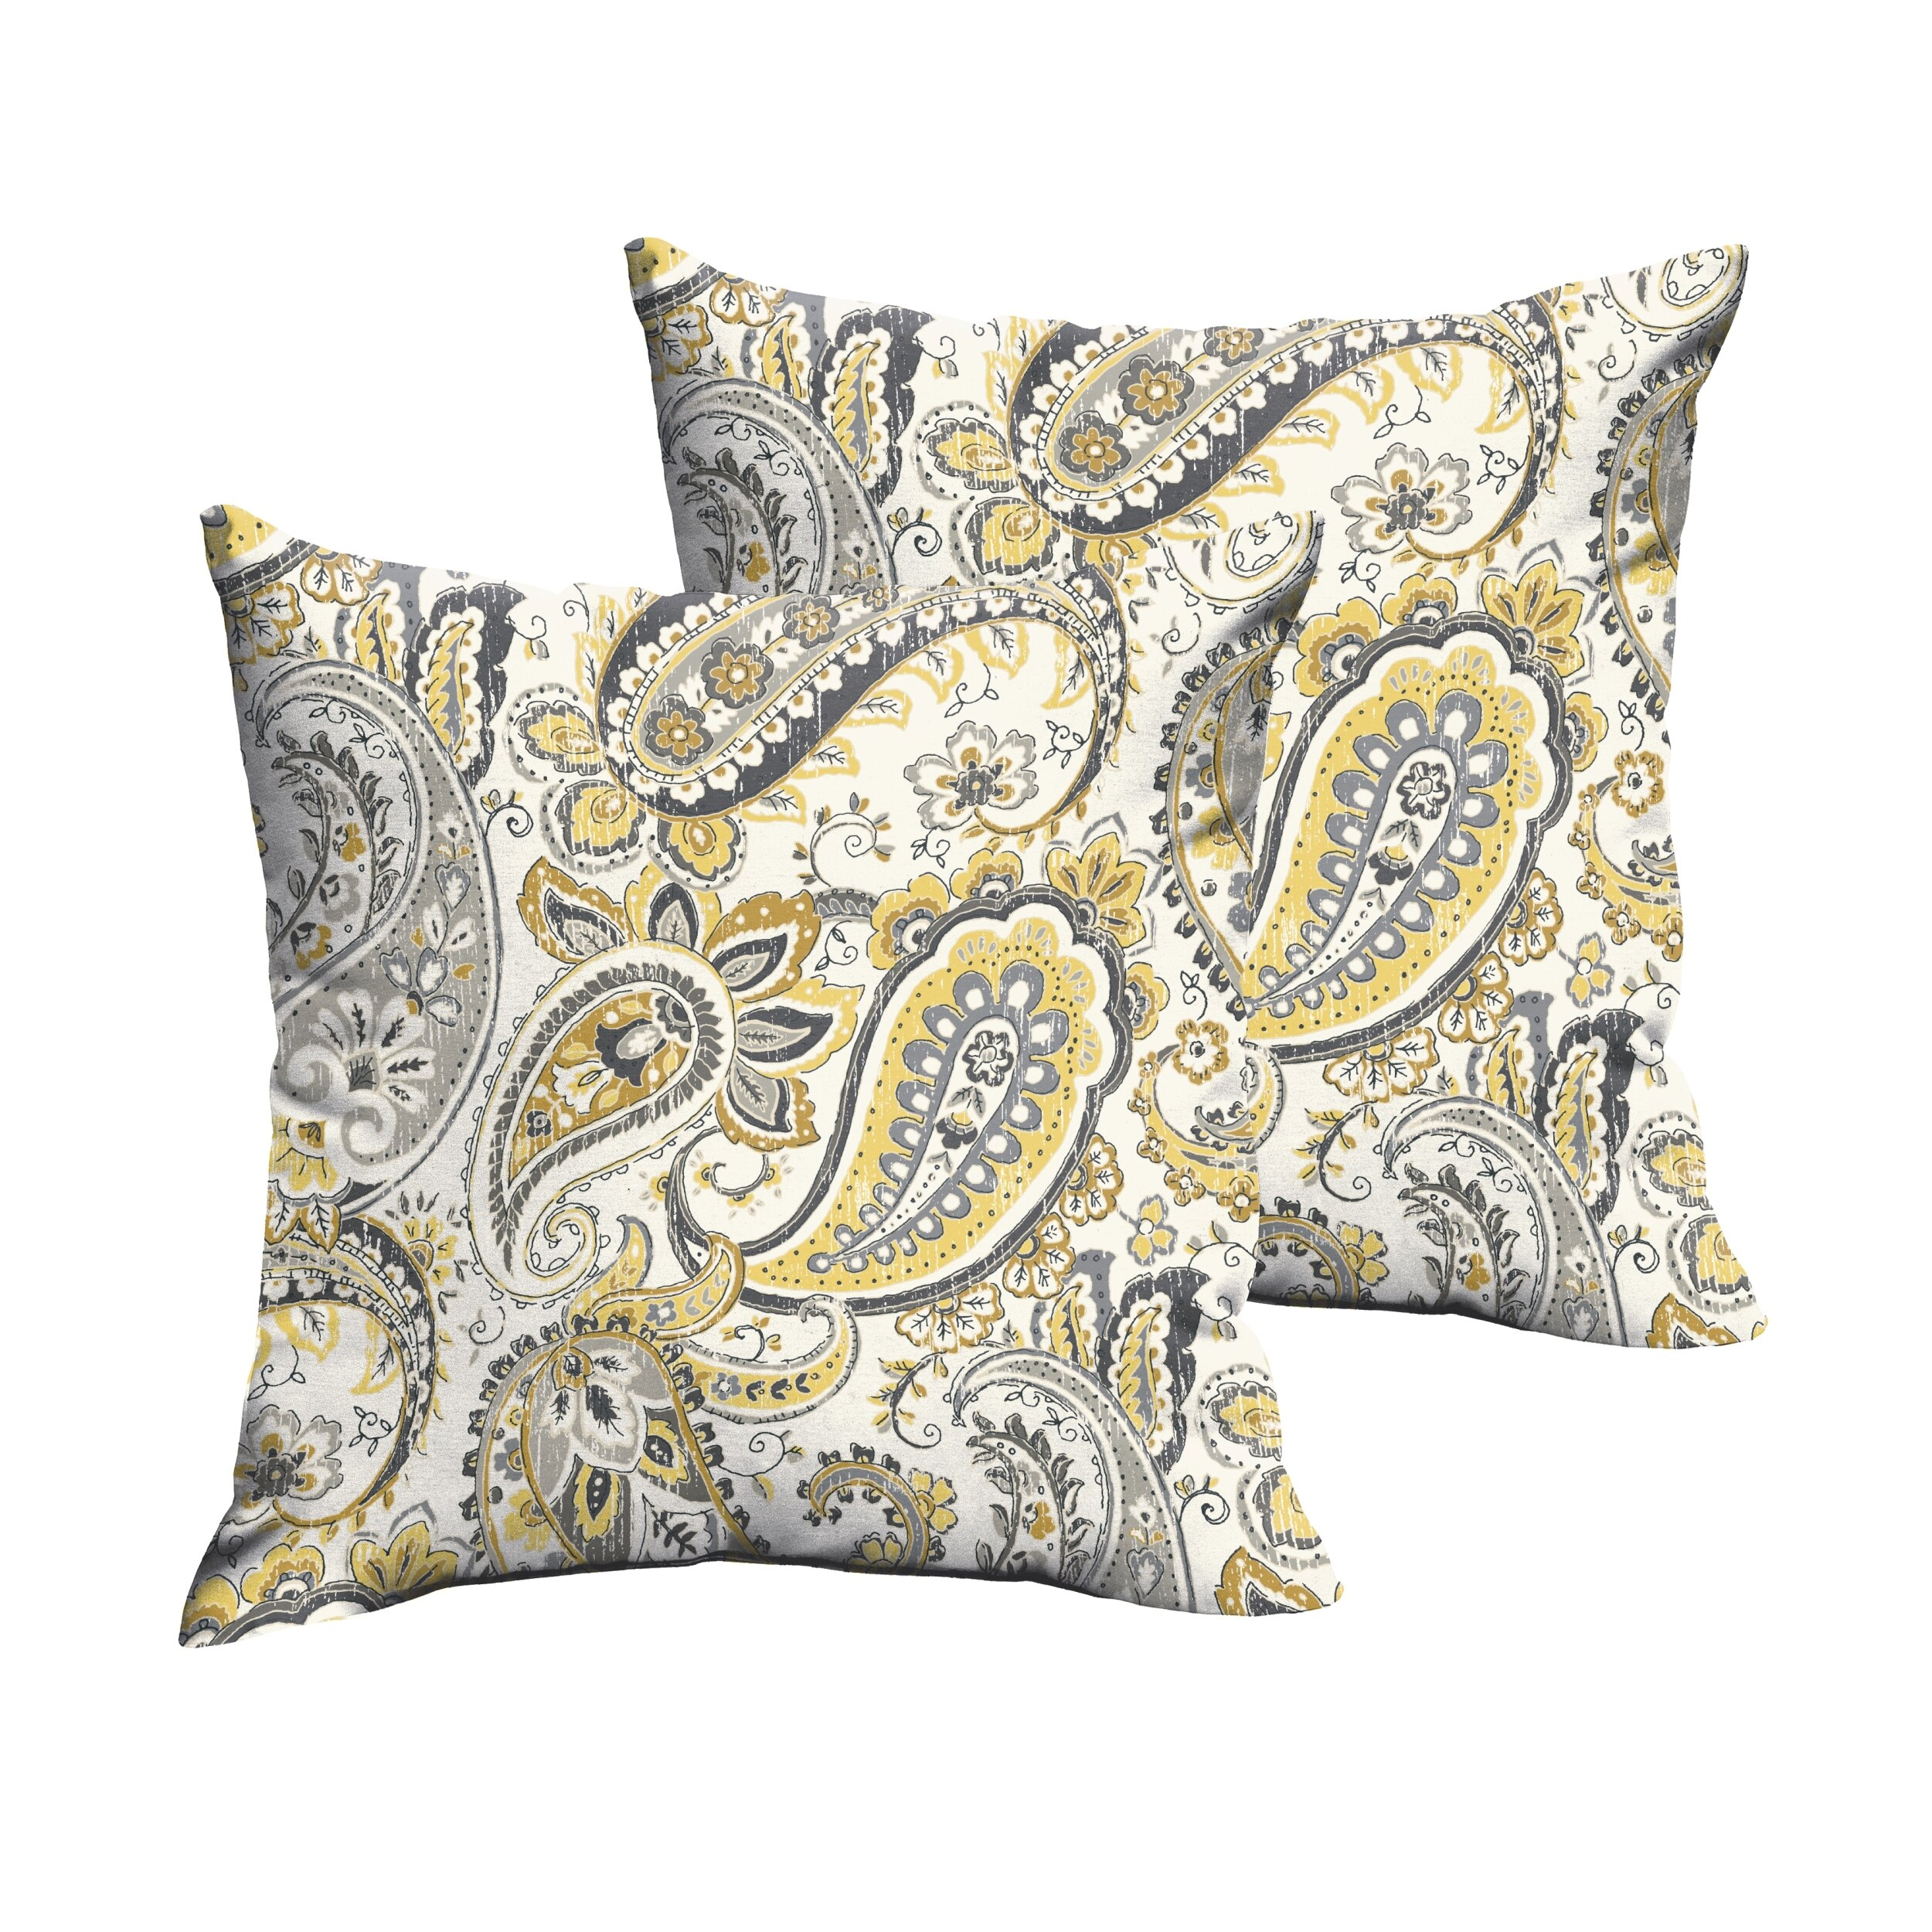 Indoor Outdoor Decorative Pillows : Darby Home Co Agawam Indoor/Outdoor Throw Pillow & Reviews Wayfair